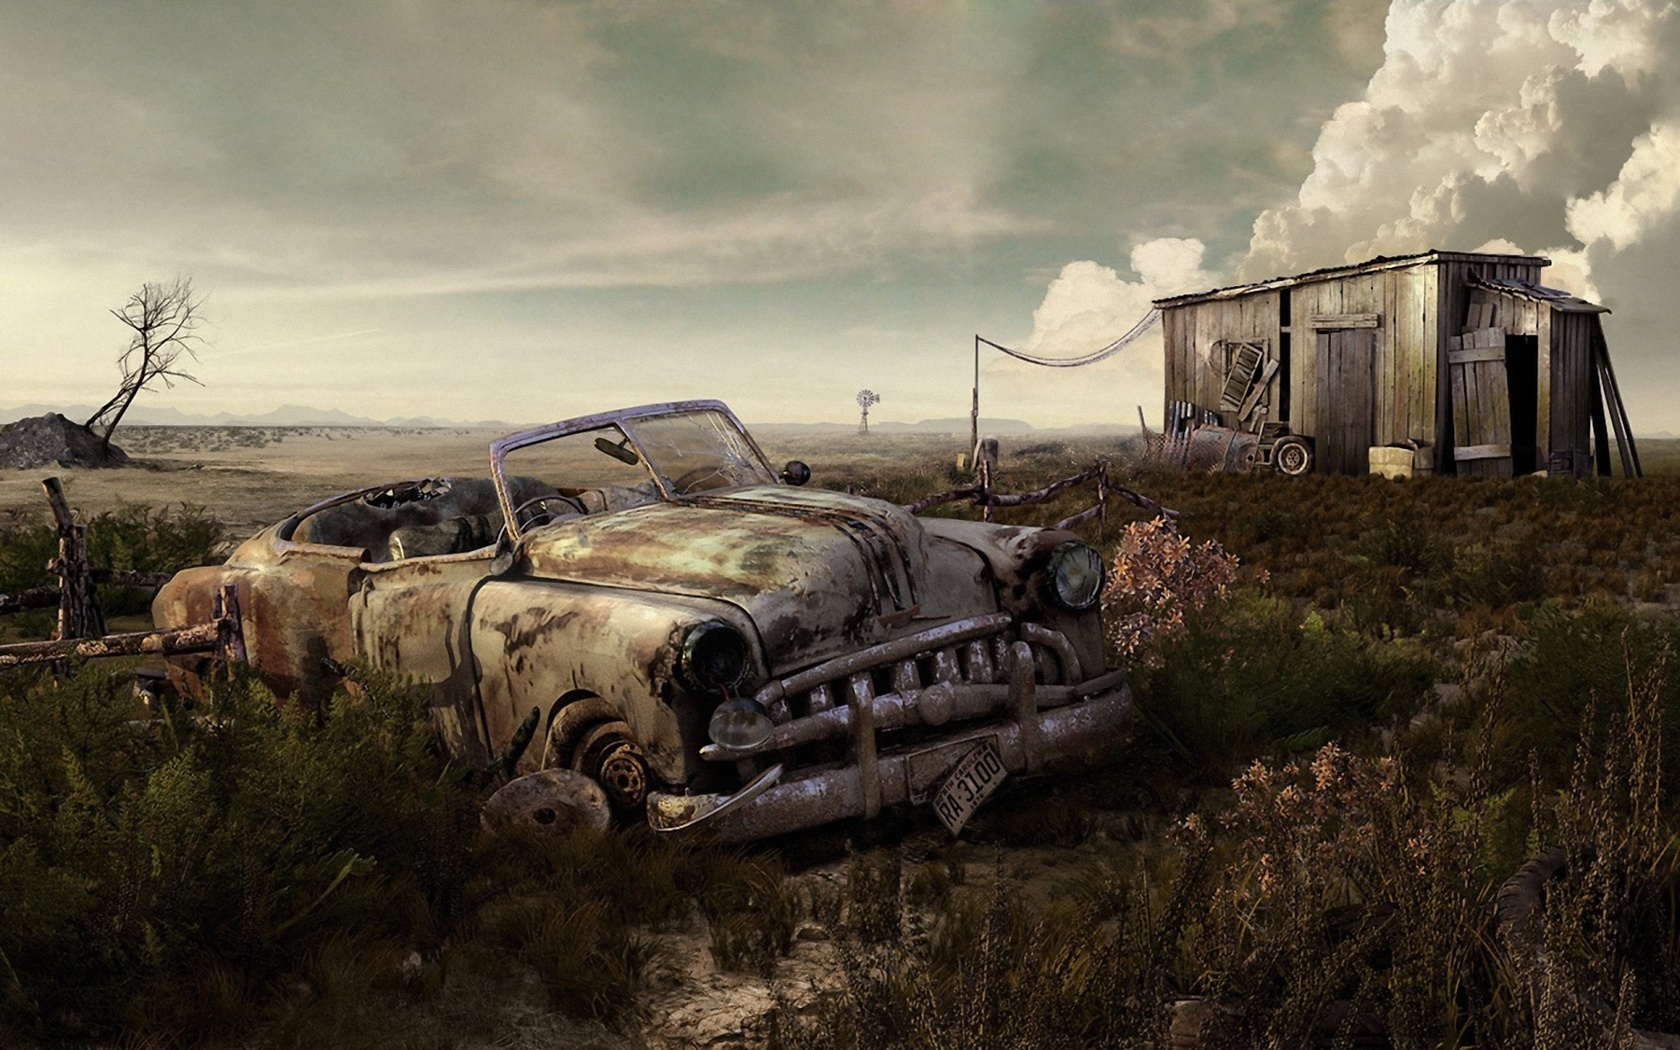 Widescreen Images Collection Of Old Car: Harri Boulding